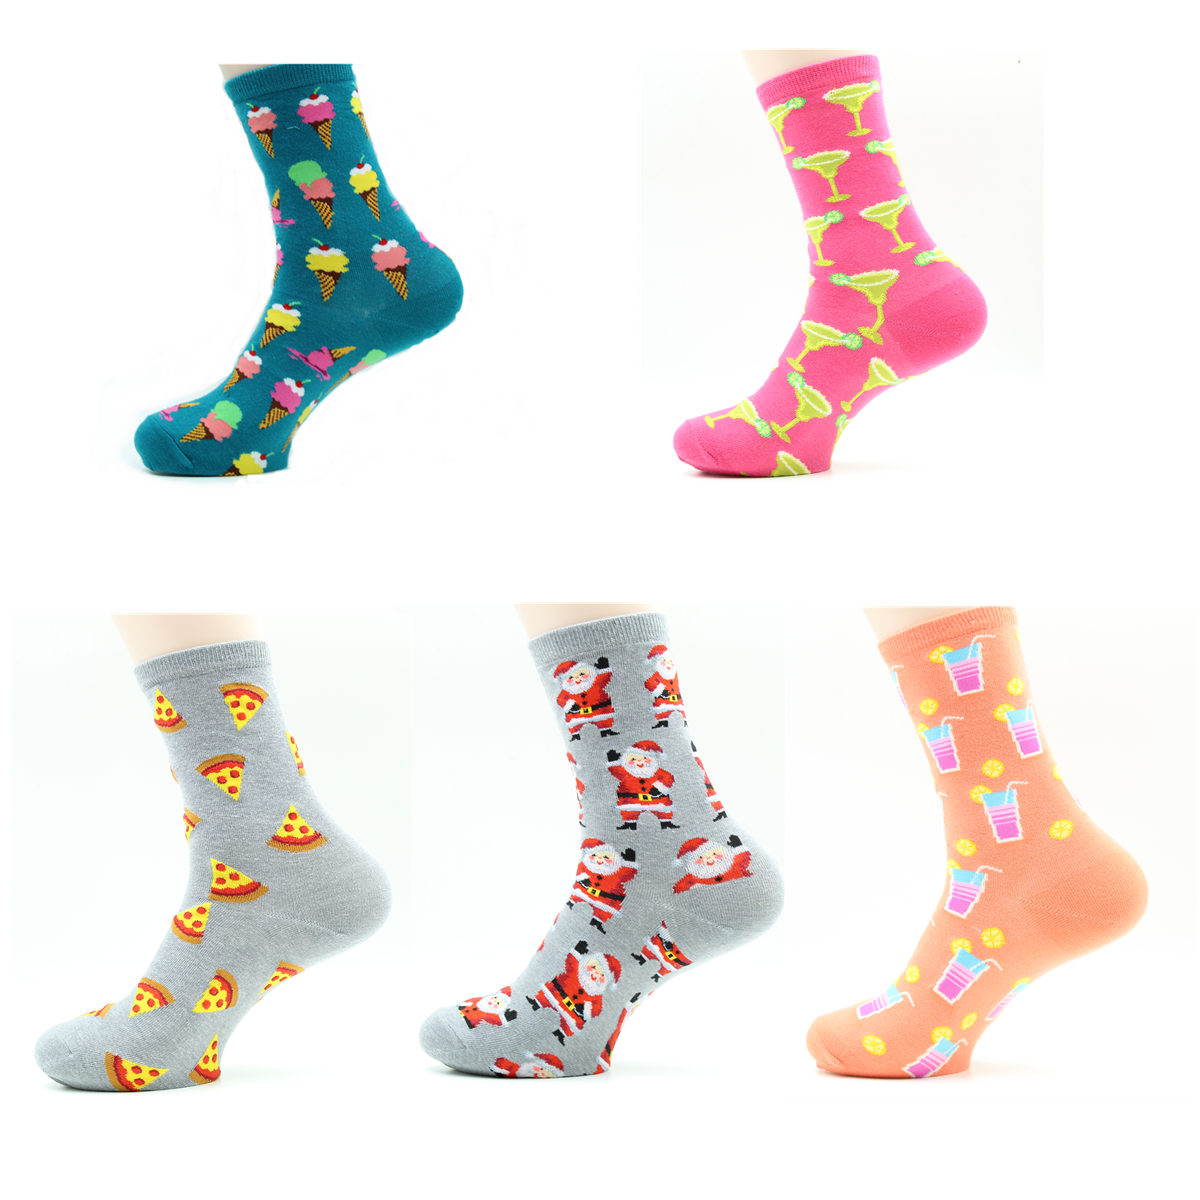 Women's   Socks   Japanese Cotton Colorful Cartoon Cute Funny Happy Kawaii Ice Cream Santa Pizza Food Ball   Socks   Girl Christmas Gift